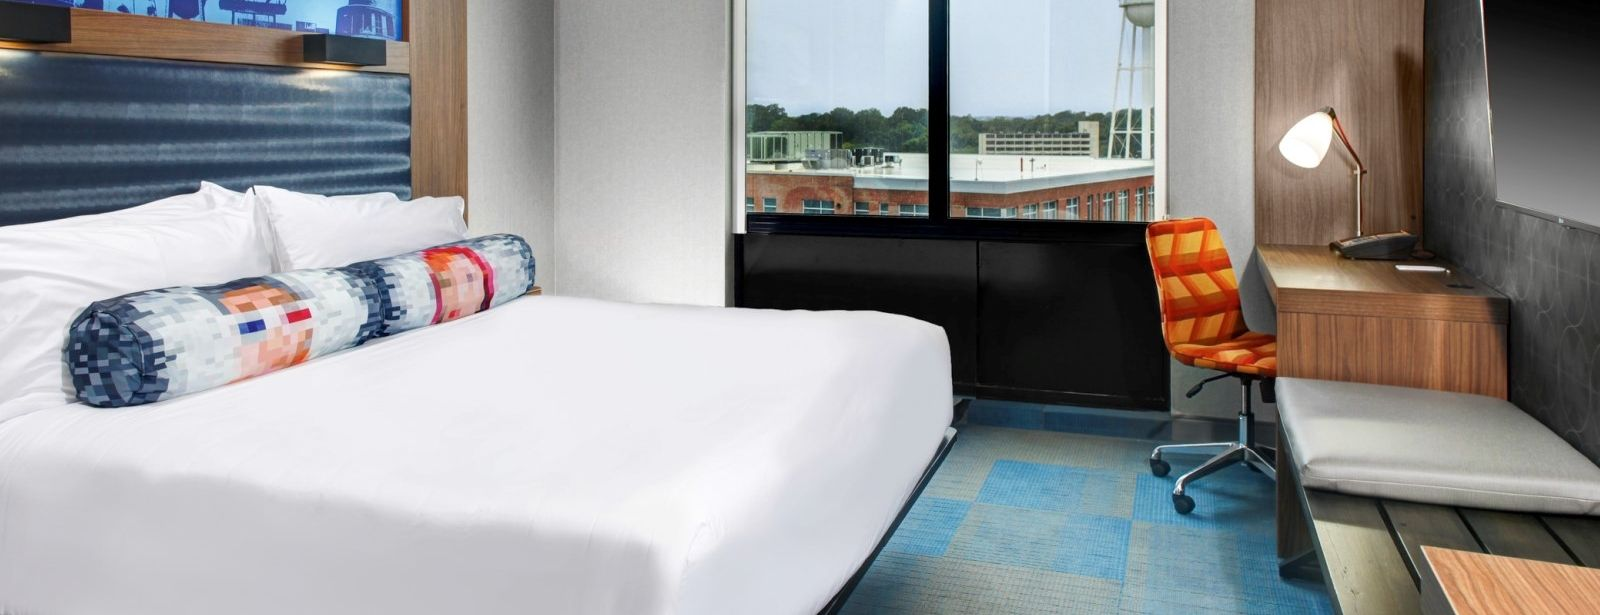 Durham Accommodations - Aloft King Room